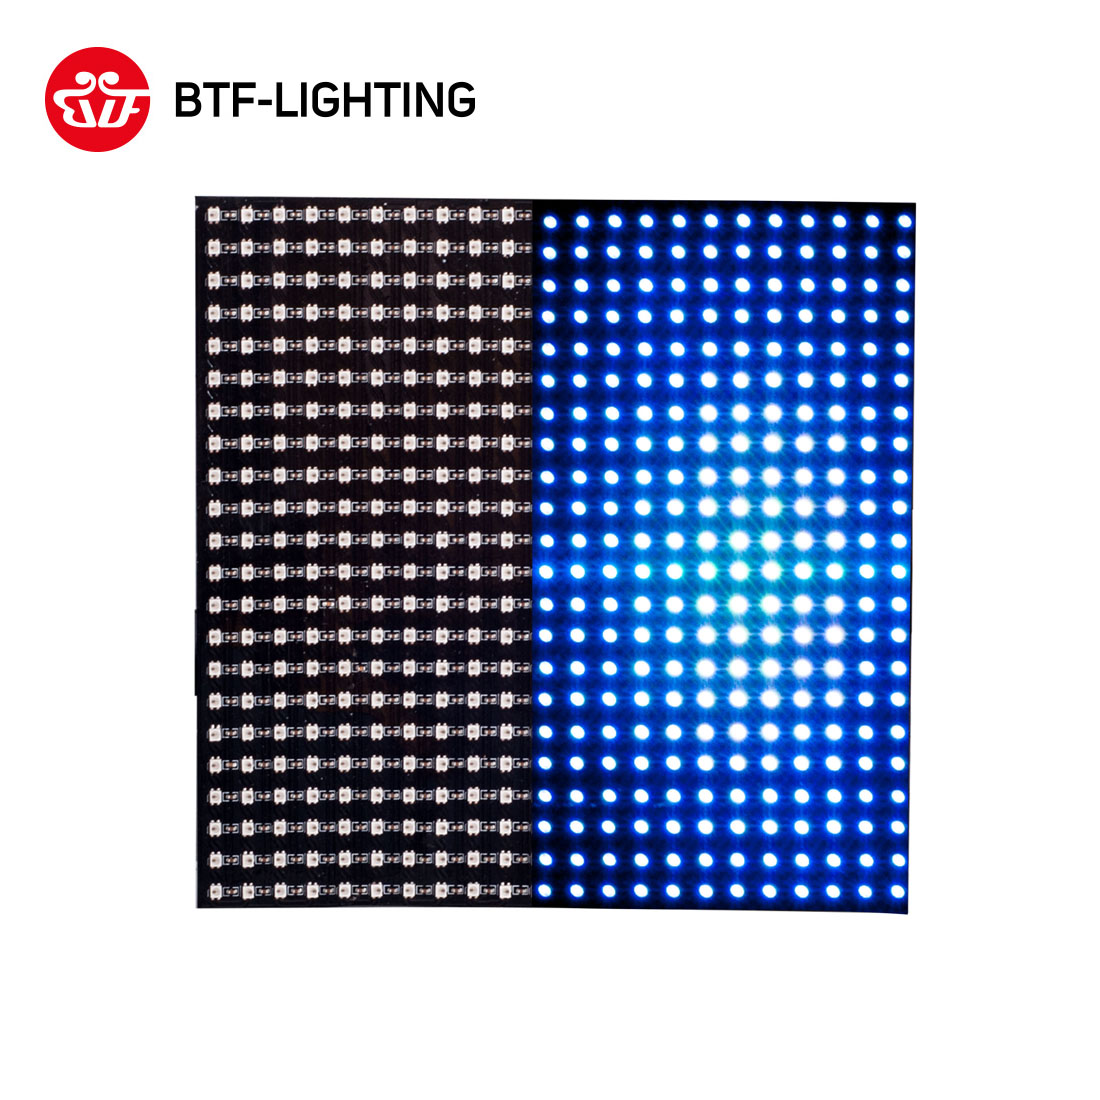 WS2812B Mini Led SMD 2427 Digital Individually Addressable Digital Flexible LED Panel Screen11x44 22x22 Full Dream Color DC5VWS2812B Mini Led SMD 2427 Digital Individually Addressable Digital Flexible LED Panel Screen11x44 22x22 Full Dream Color DC5V